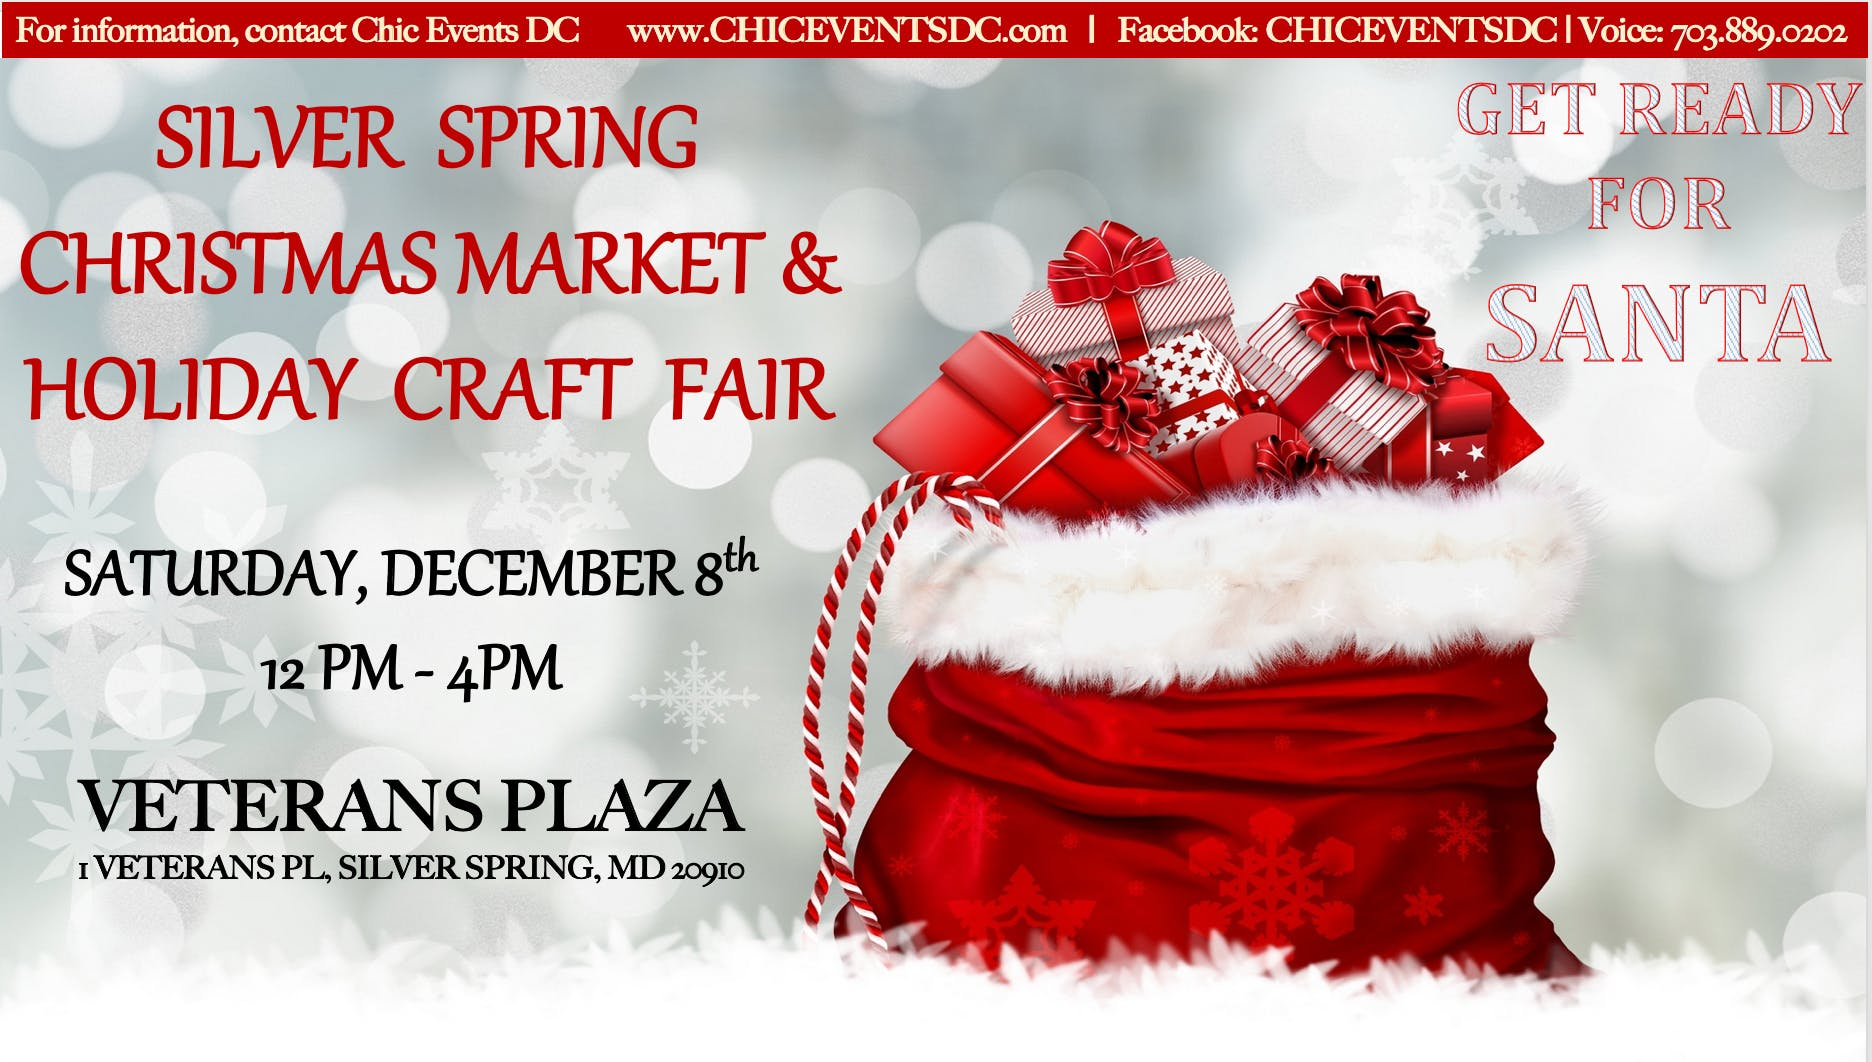 Christmas Events Dc 2019.Silver Spring Christmas Market And Holiday Craft Fair The